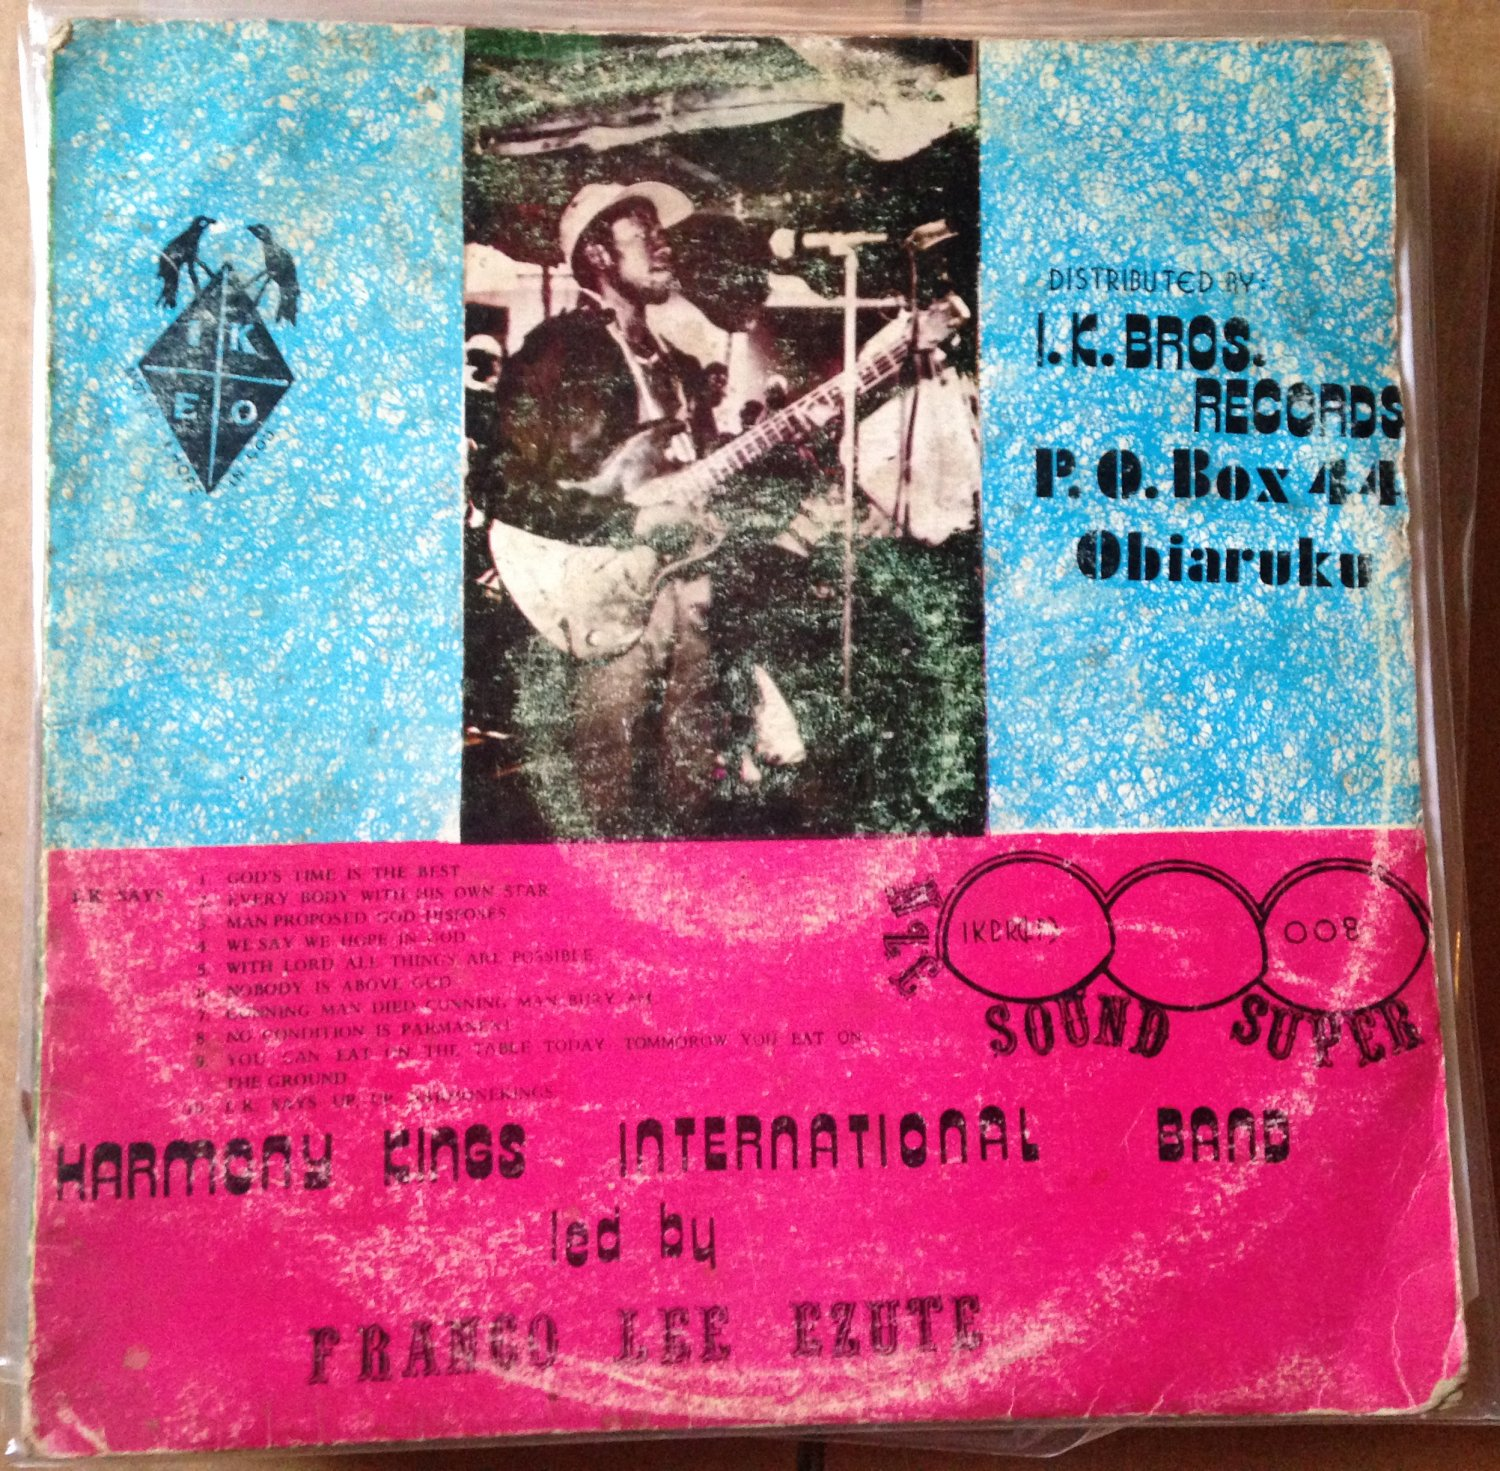 FRANCO LEE EZUTE & HARMONY KINGS LP ethiope social club NIGERIA mp3 LISTEN